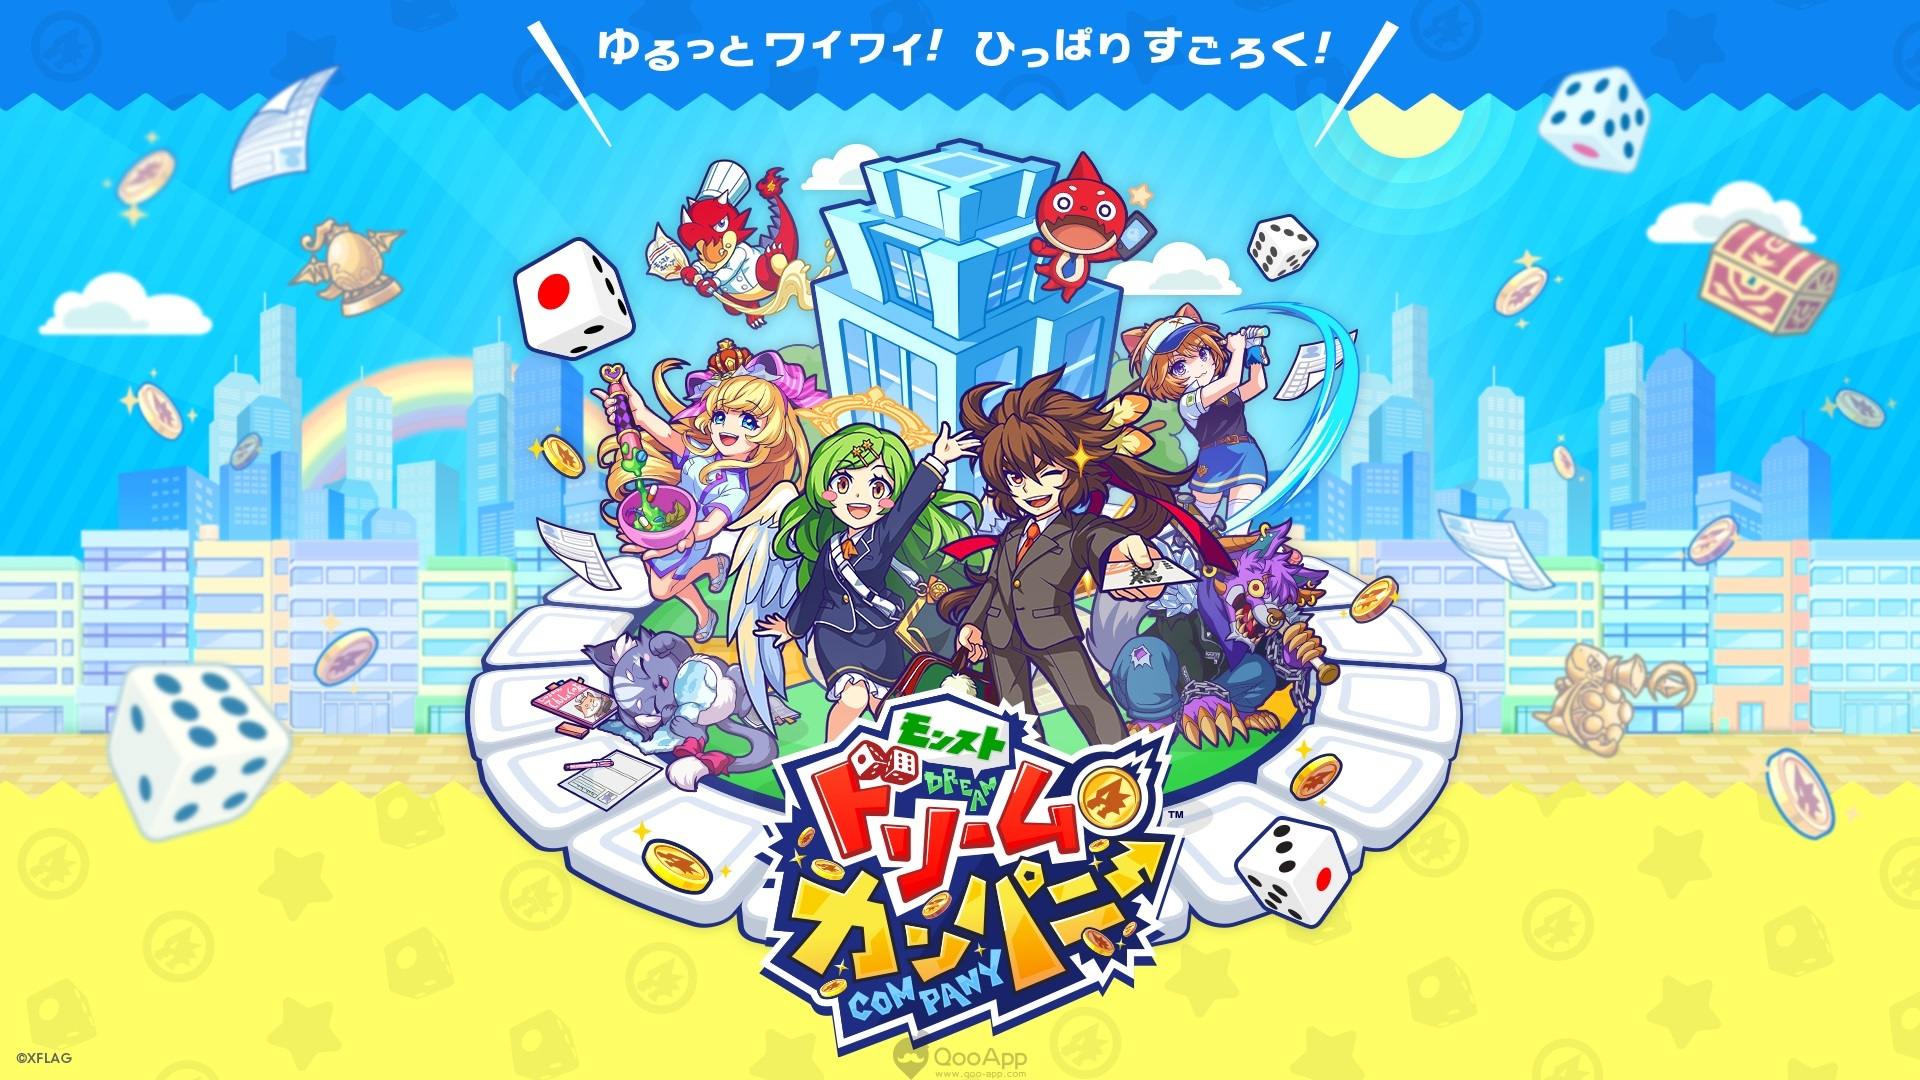 Qoo News Monster Strike Announced A New Simulation Mobile Game